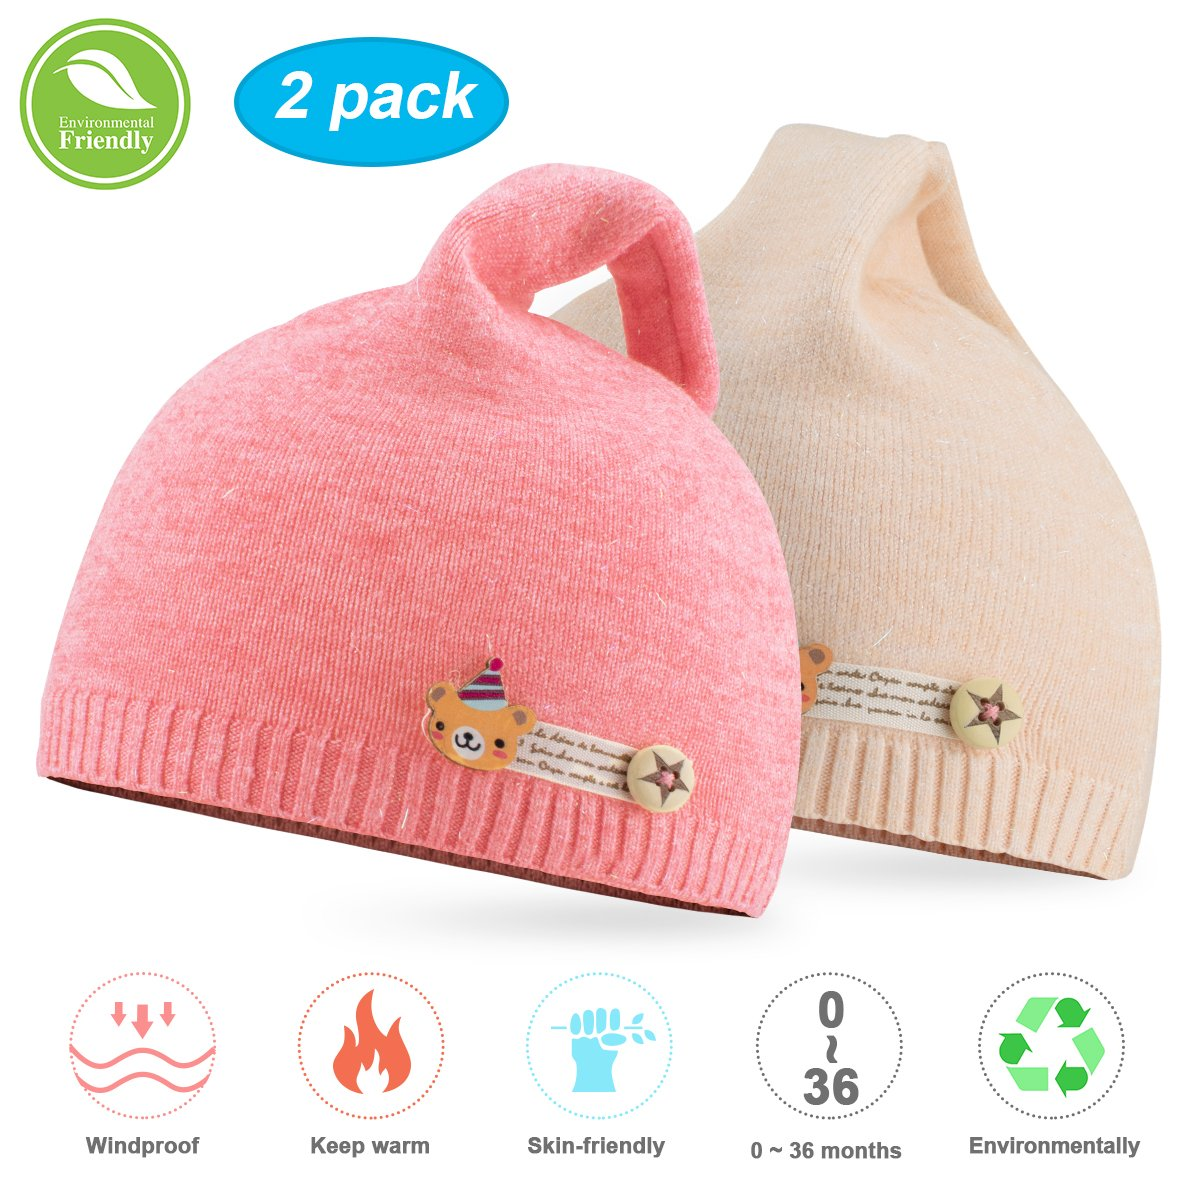 NIOFEI Baby Winter Beanie Hats For Unisex Baby Boys Girls Soft Cotton Cute Toddler Infant Kids Knit Beanies Hats Caps NF-002 Baby Hats